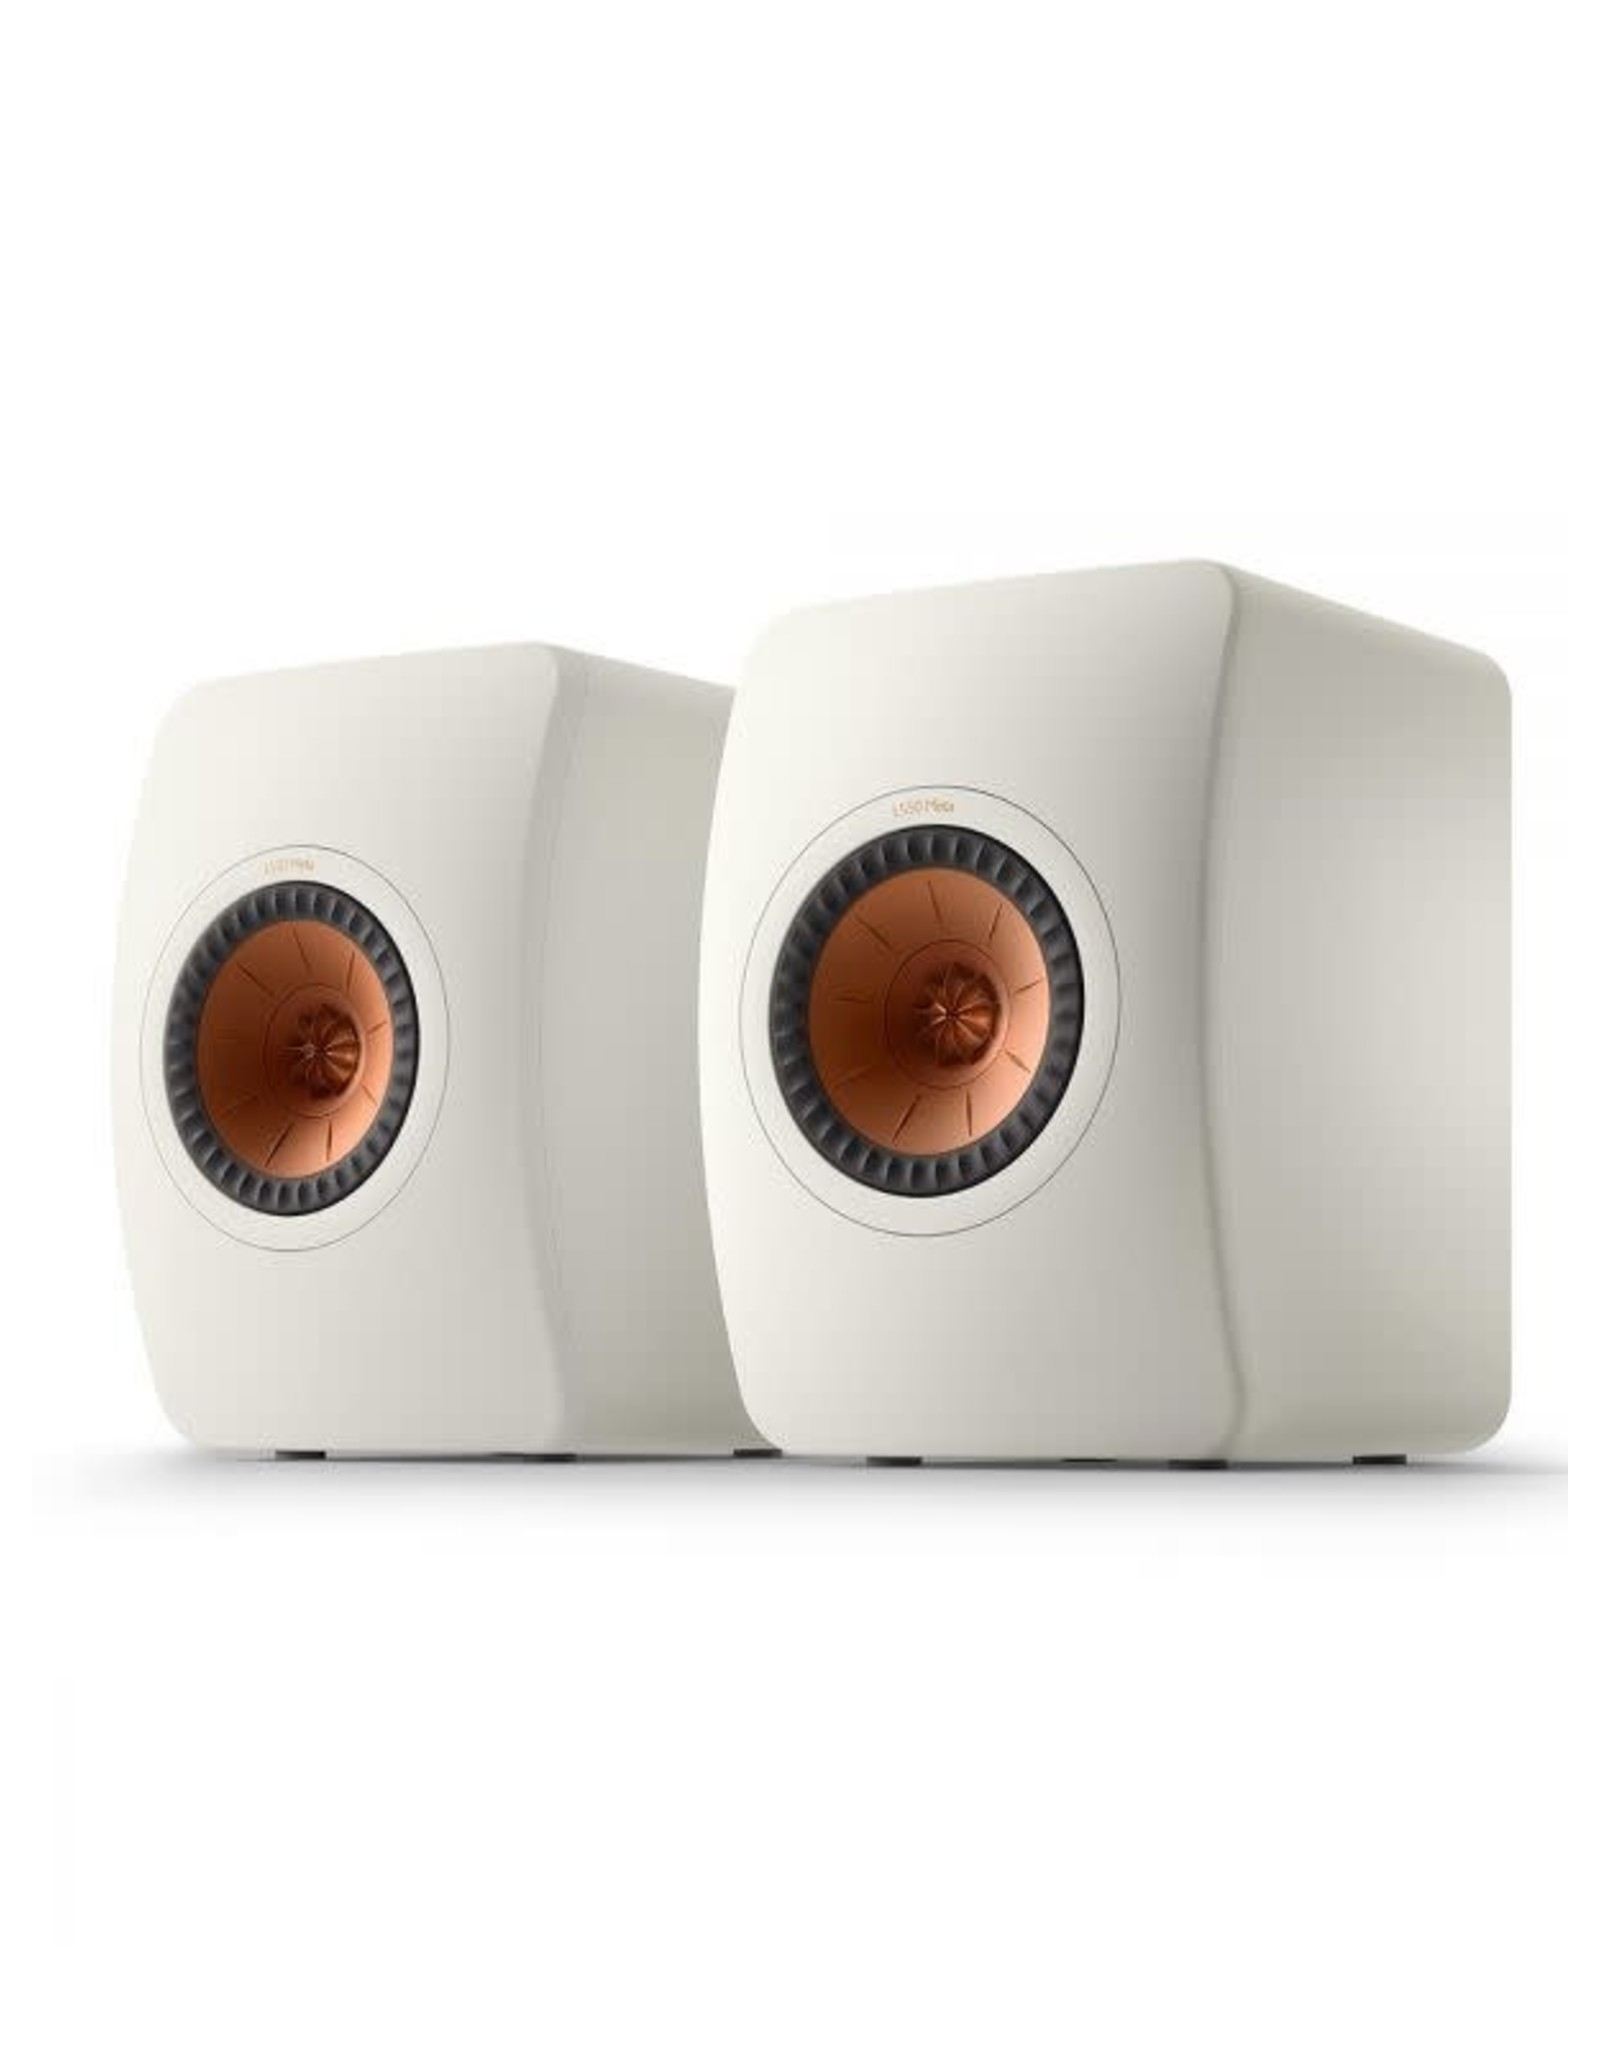 KEF KEF LS50 Meta Bookshelf Speakers